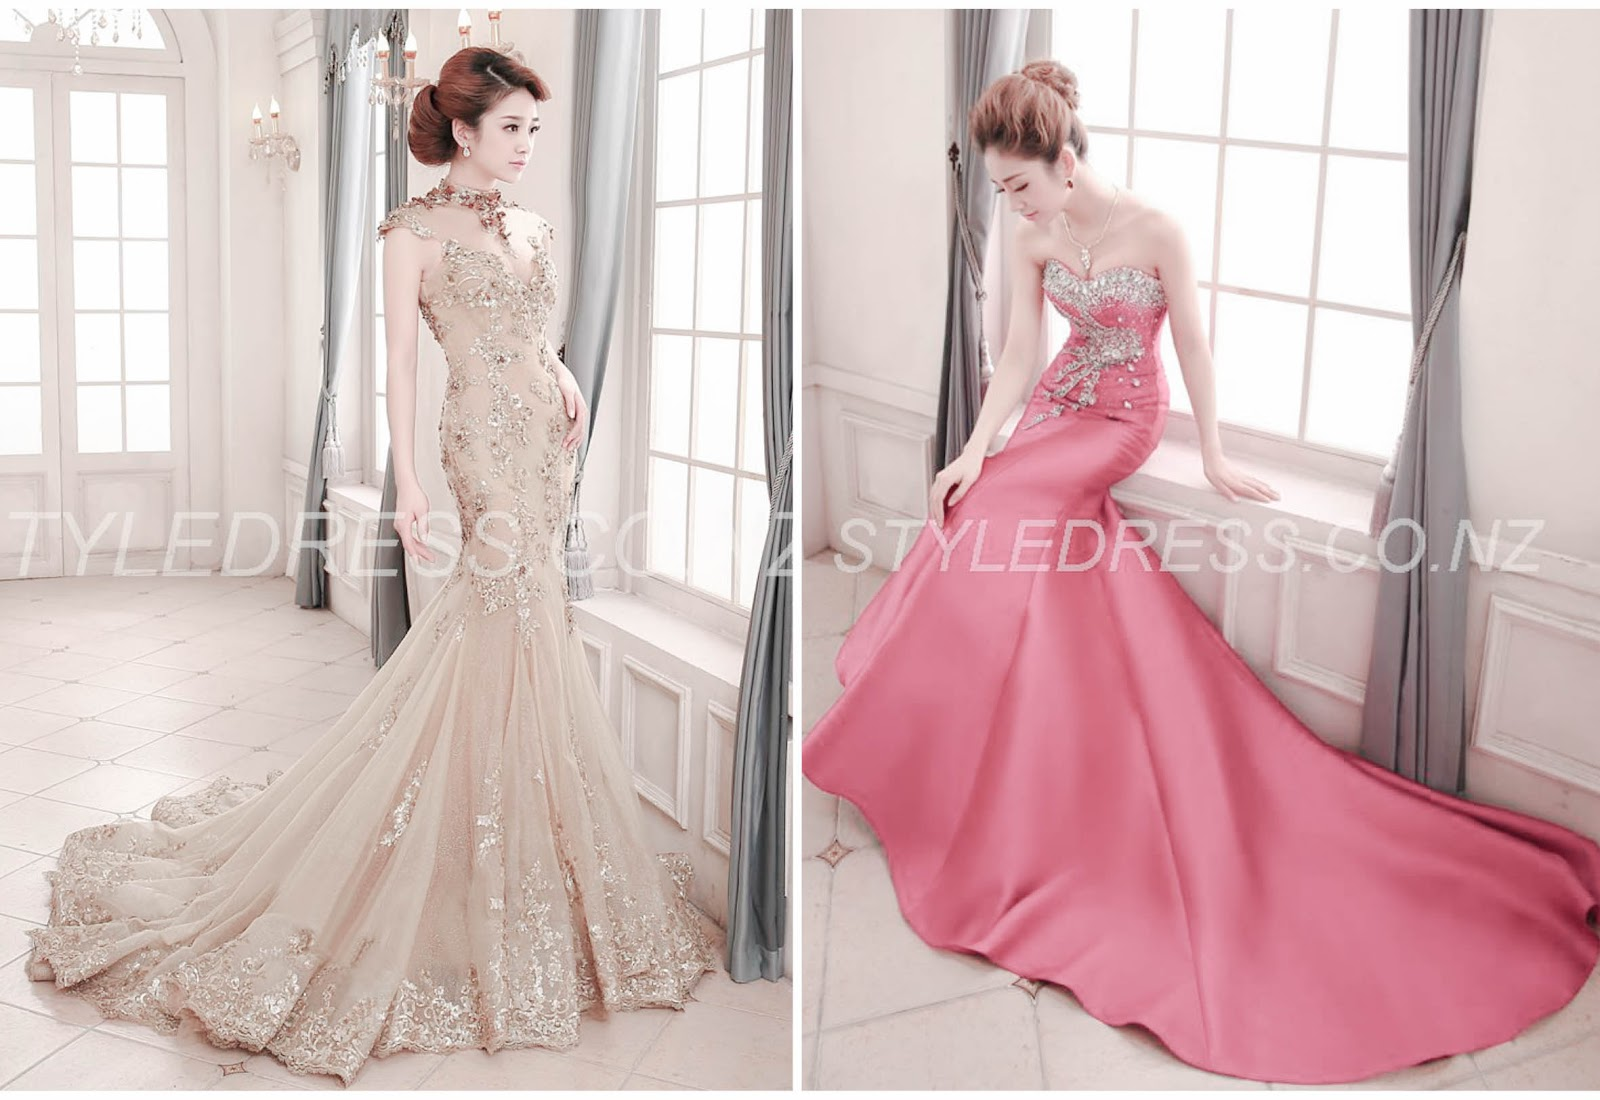 Vintage High Neck Mermaid Appliques Backless Lace-up Floor-Length Evening Dress